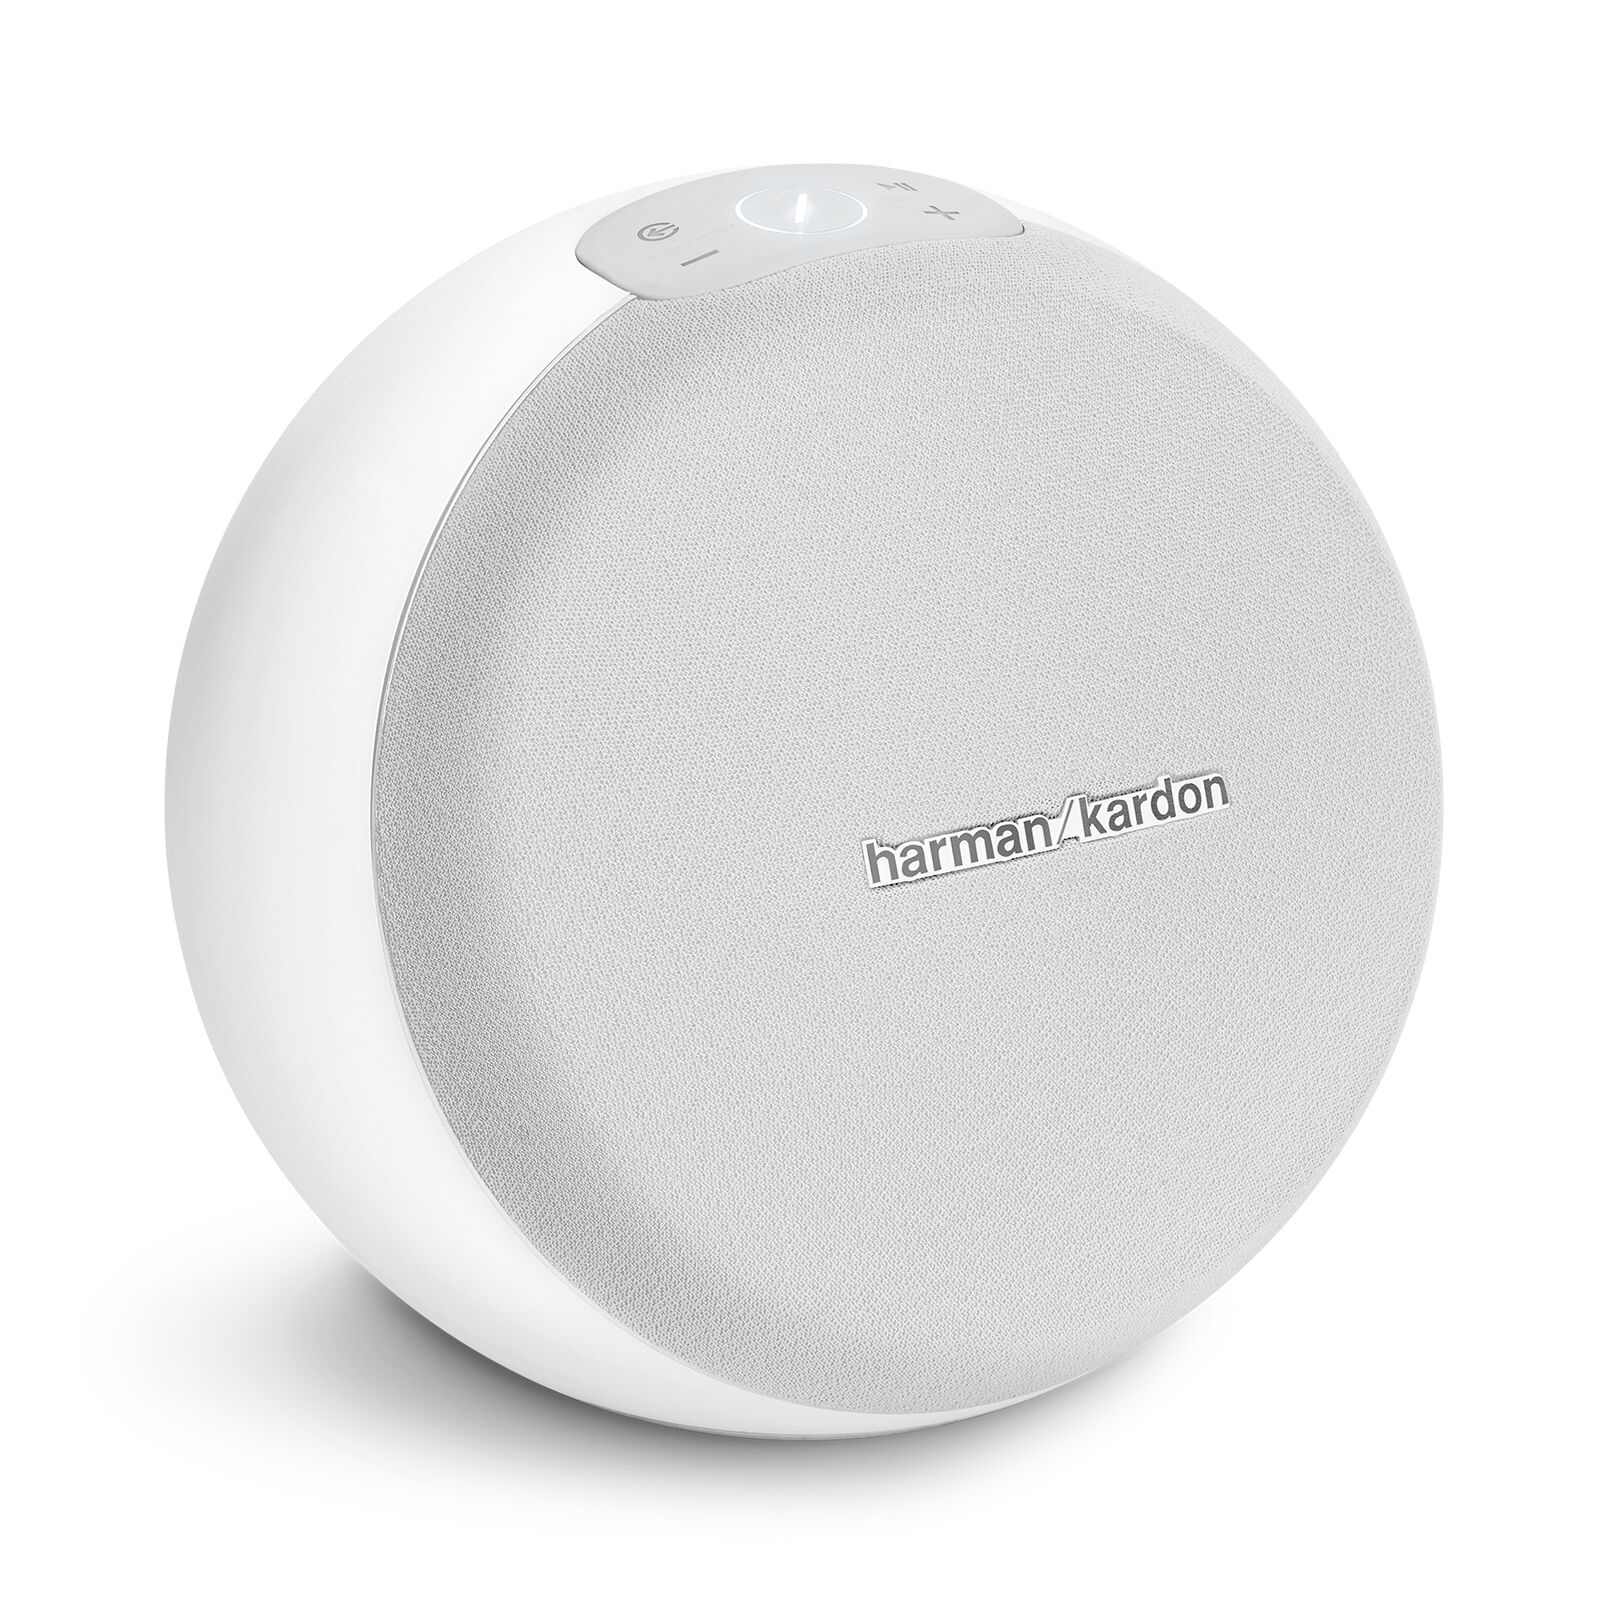 Image of Harman Kardon Omni 10 Plus White Bärbara Högtalare REFURBISHED